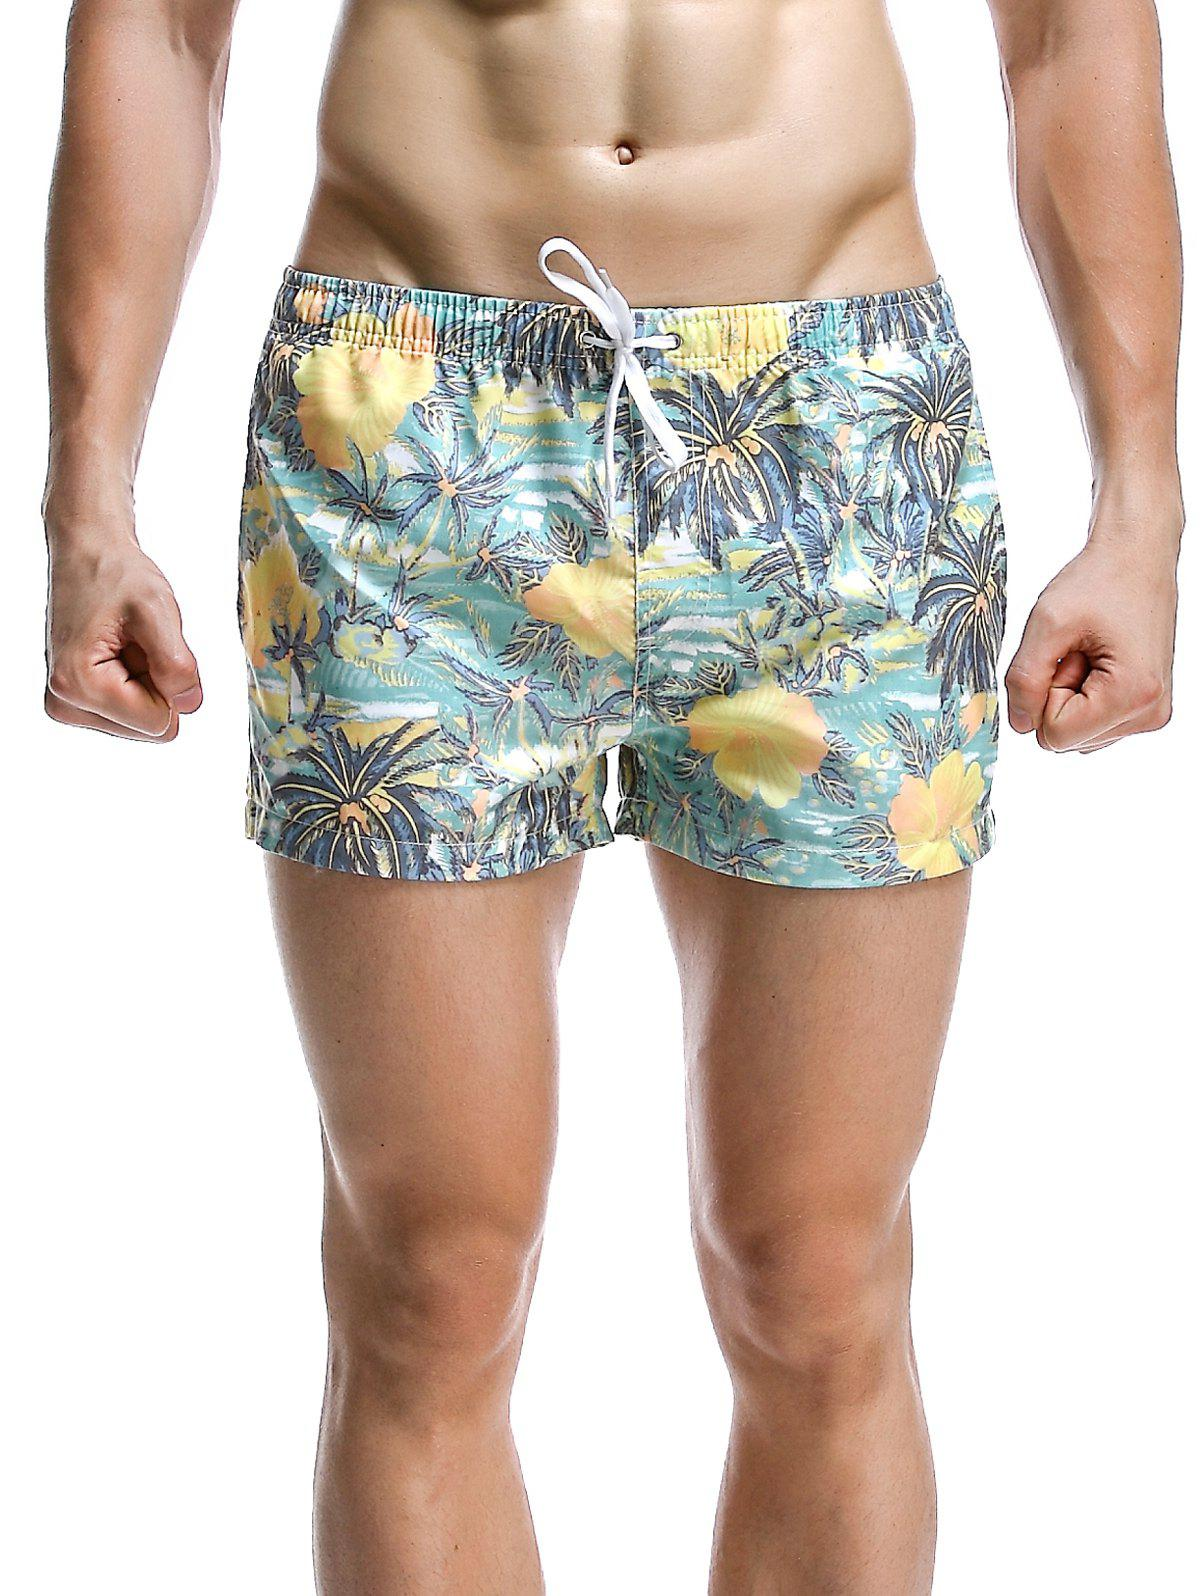 Men's Fashion Coconut Tree Printed Boardshorts - CYAN XL